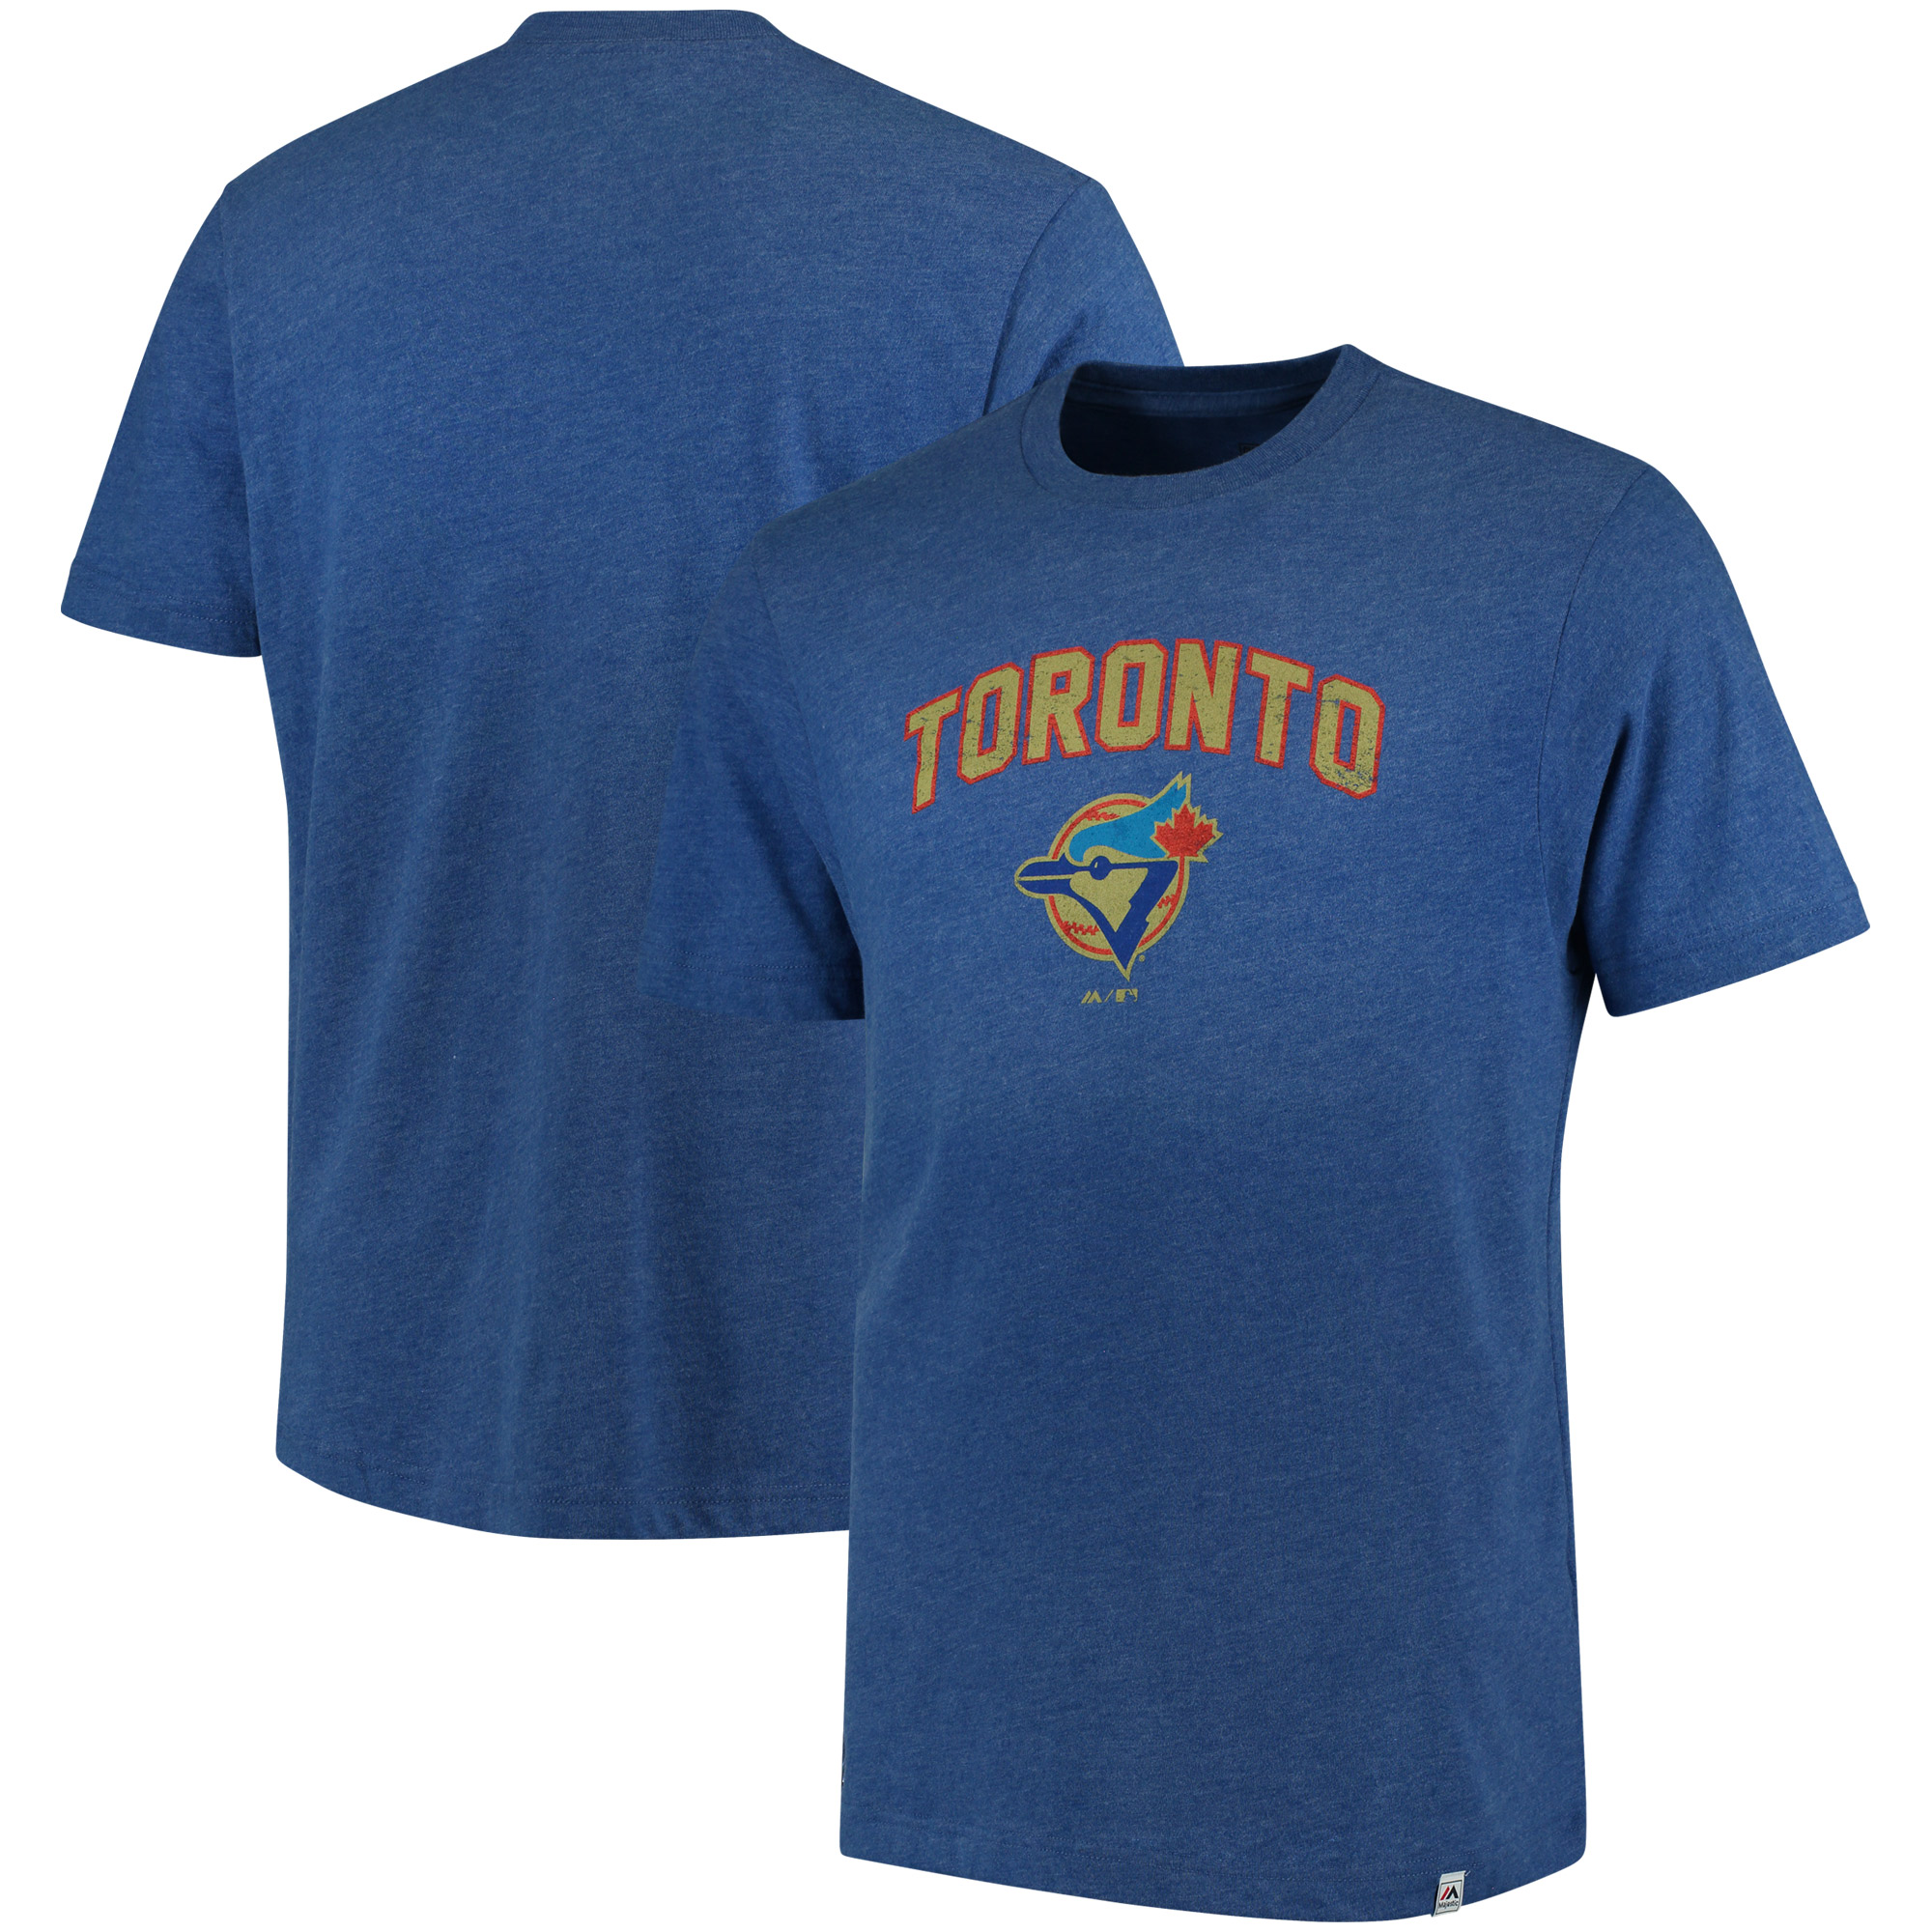 Toronto Blue Jays Majestic Cooperstown Collection Eephus Pitch Softhand T-Shirt - Royal